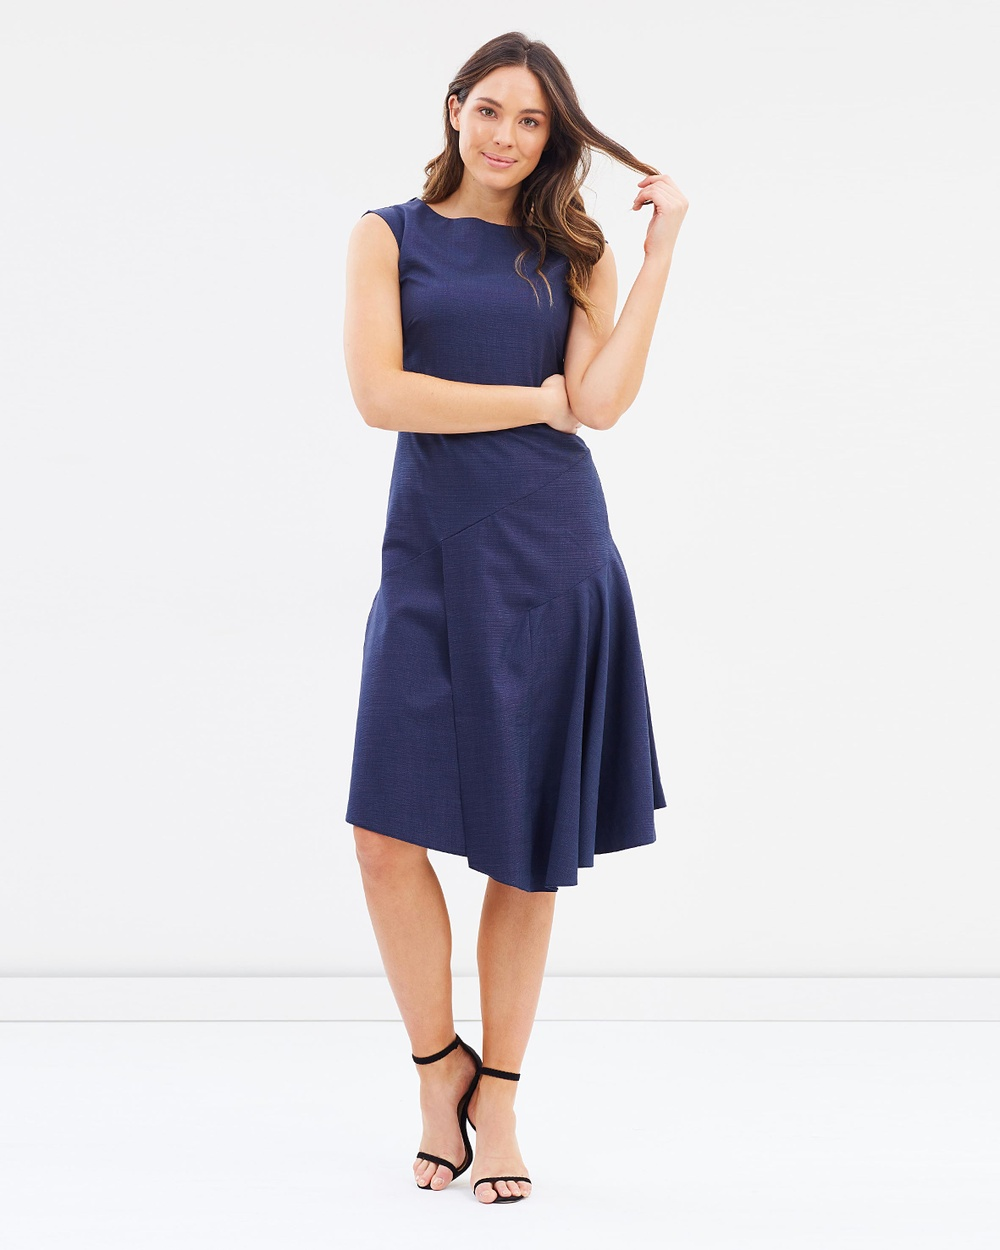 Closet London Asymmetrical Drape Dress Dresses Navy Asymmetrical Drape Dress